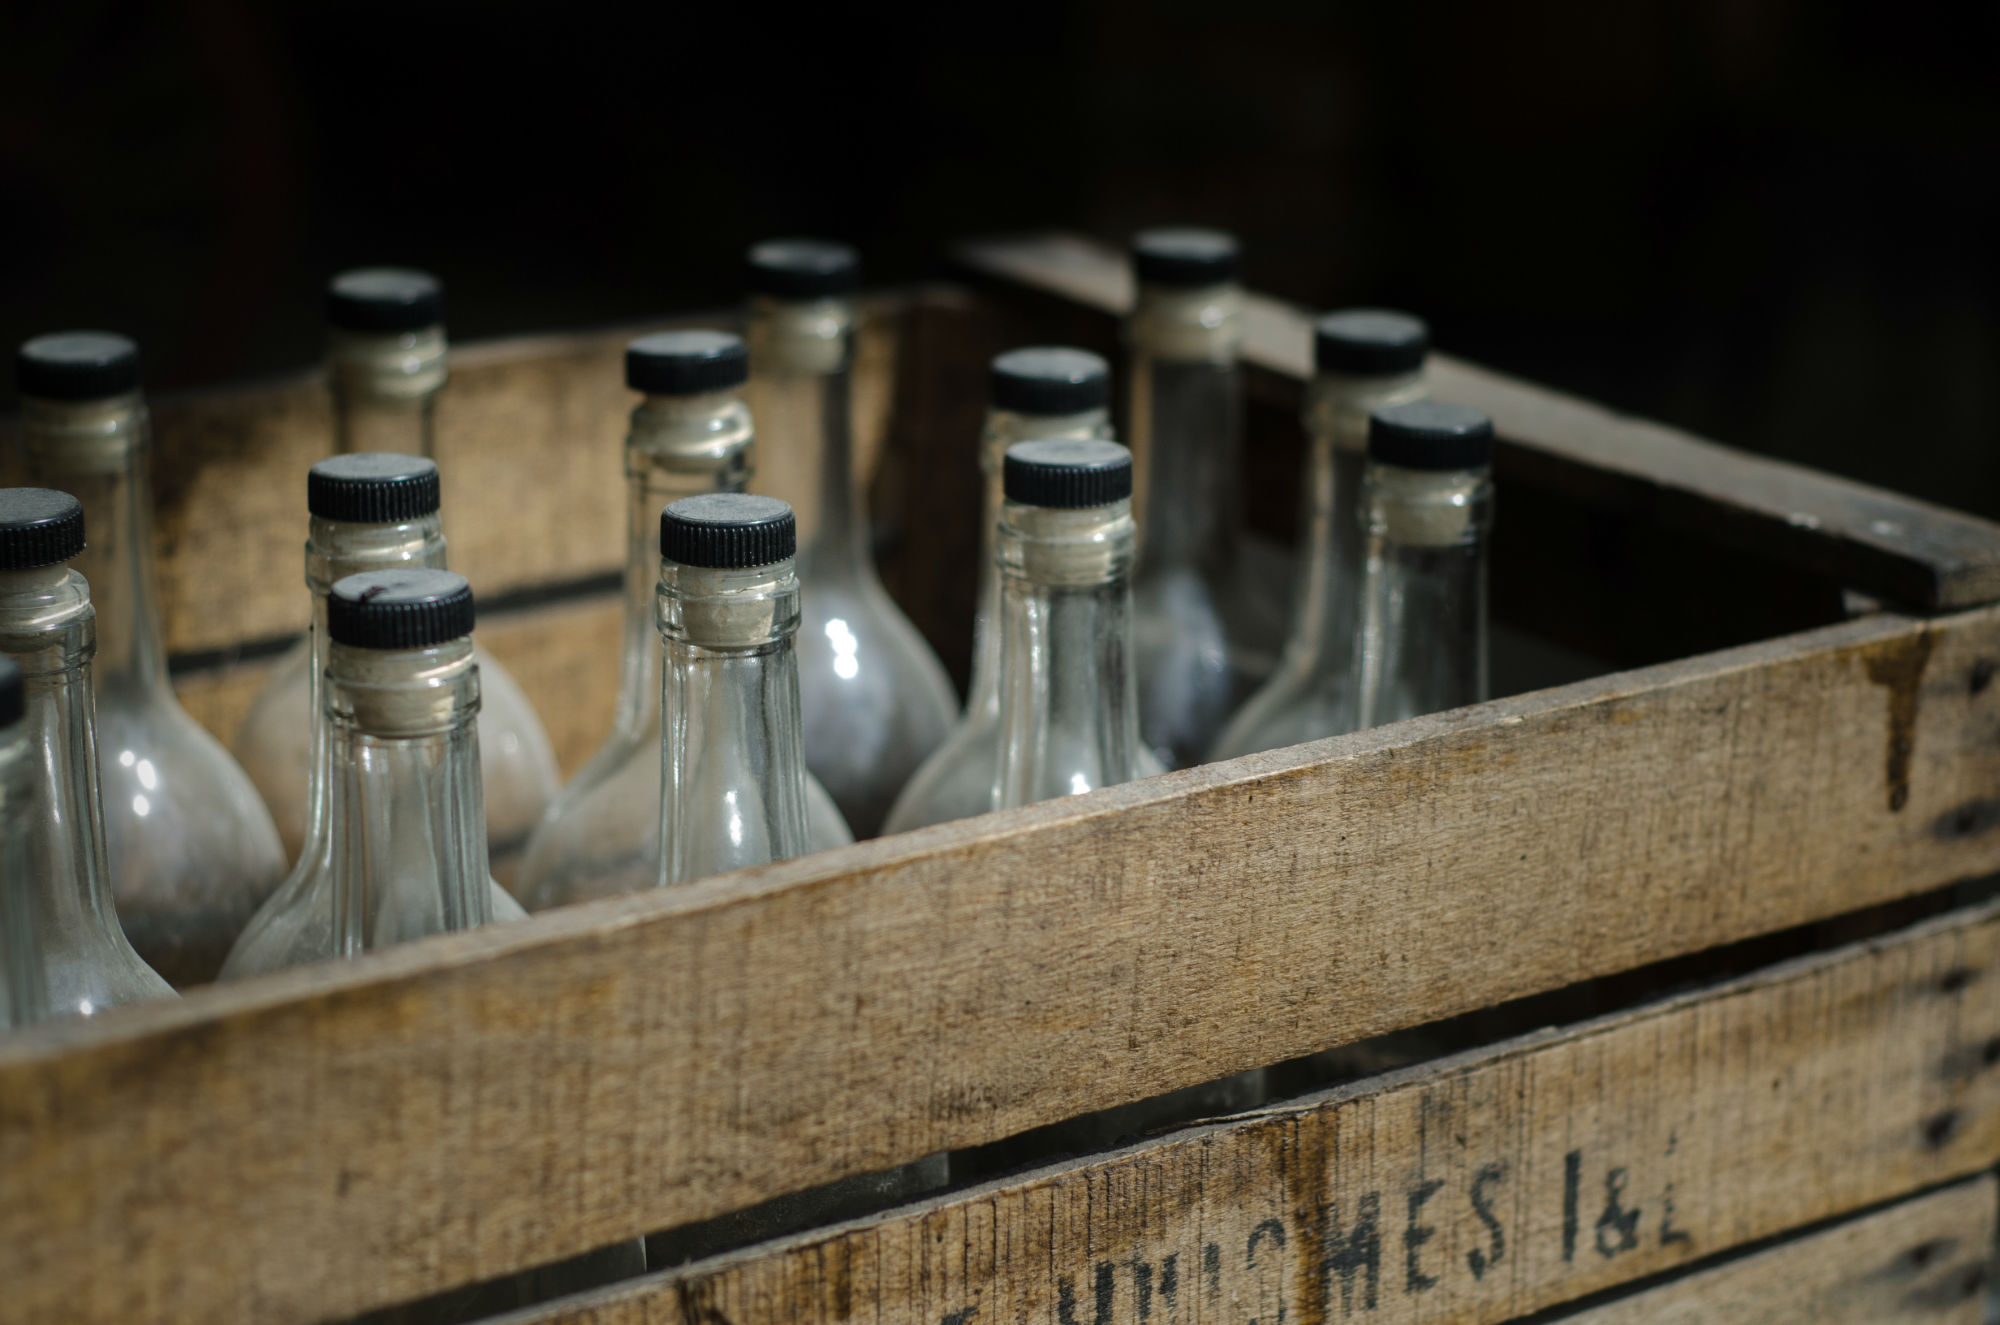 Bottles In A Crate in the Diefenbunker Escape Room